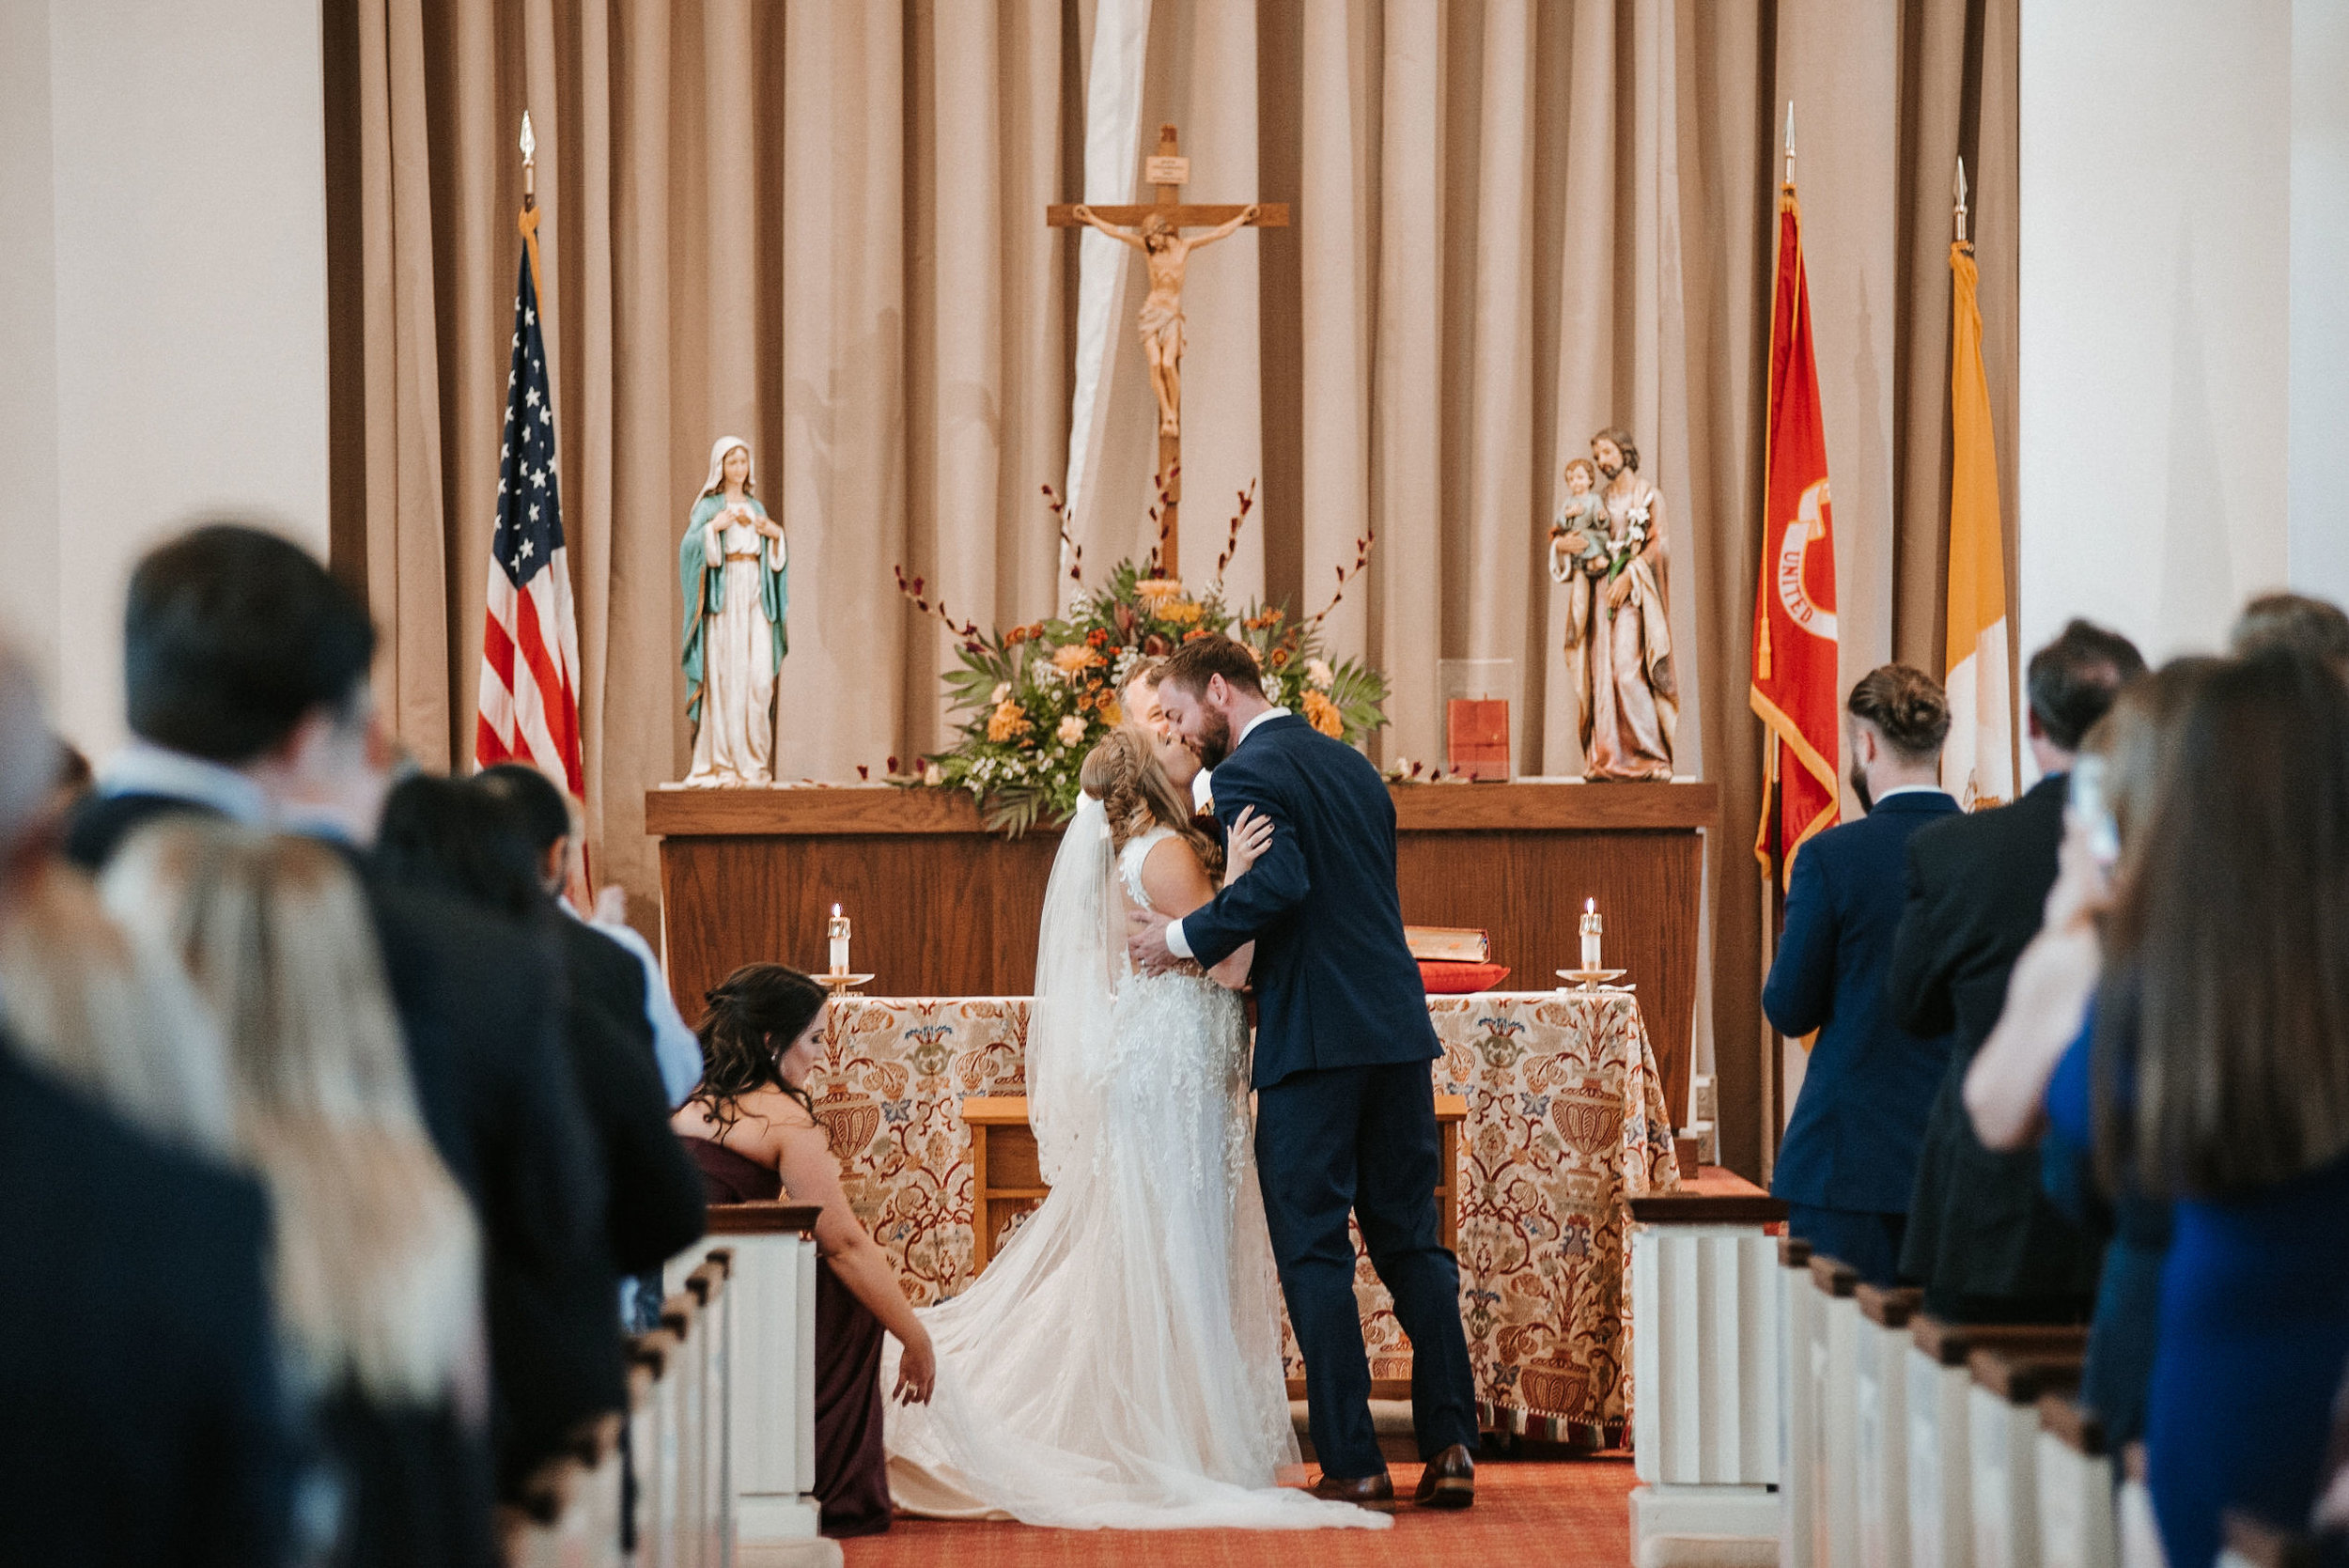 bride and groom kissing at the alter at the united states marine corps memorial chapel